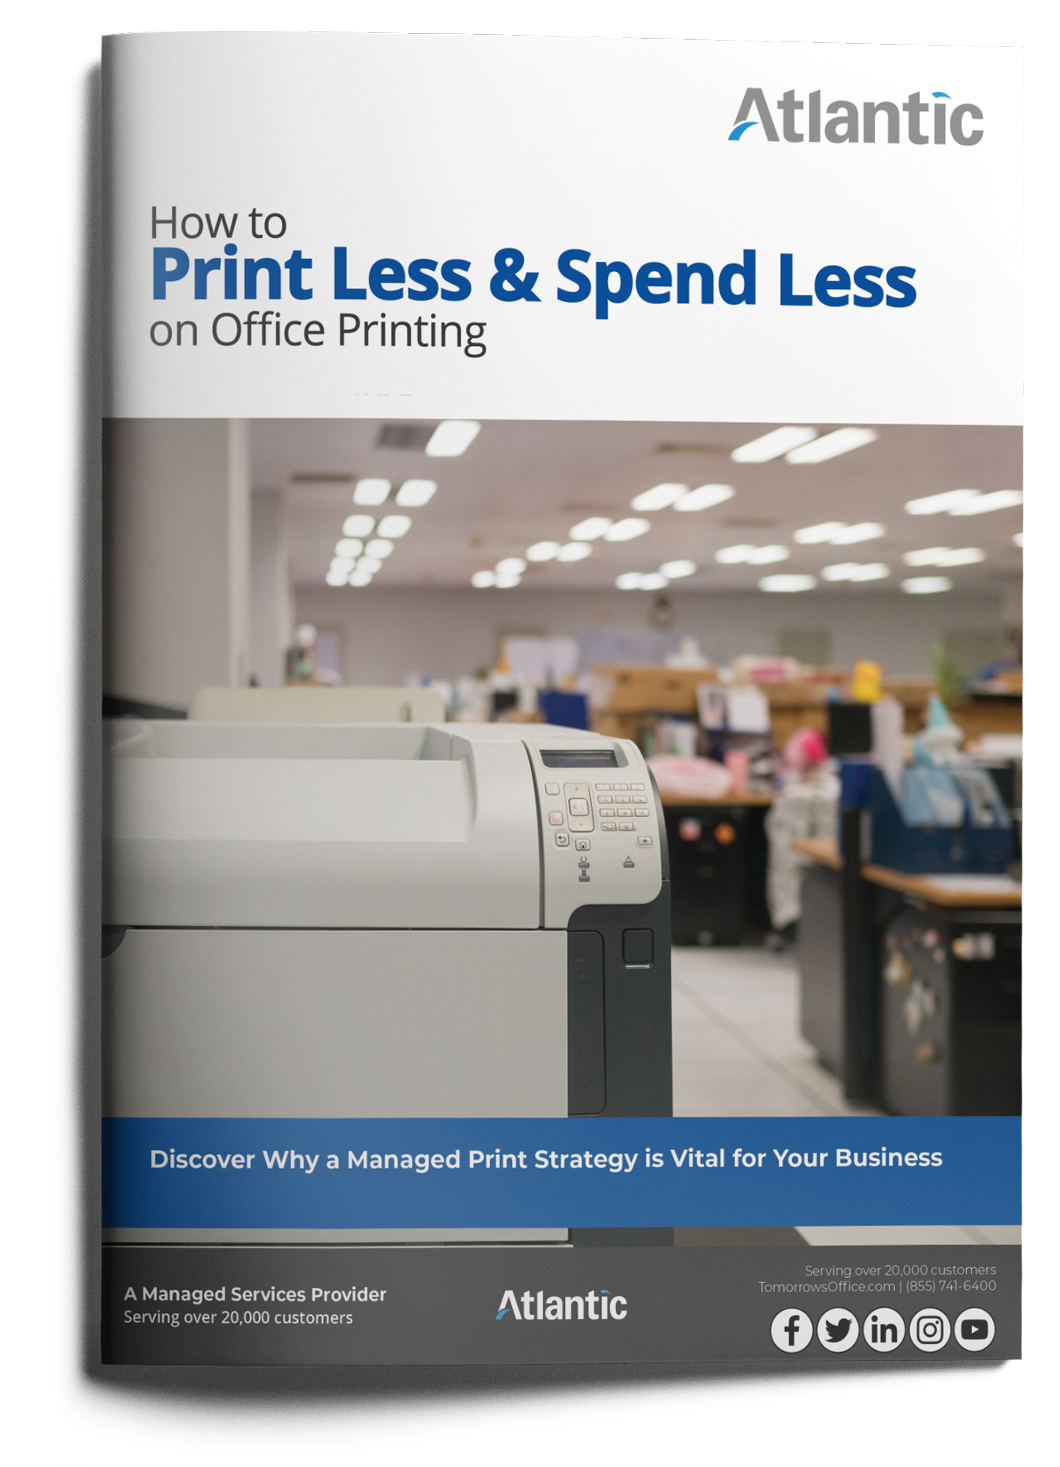 How to print less and spend less on office printing ebook cover with text. Discover why a managed print strategy is vital for your business.